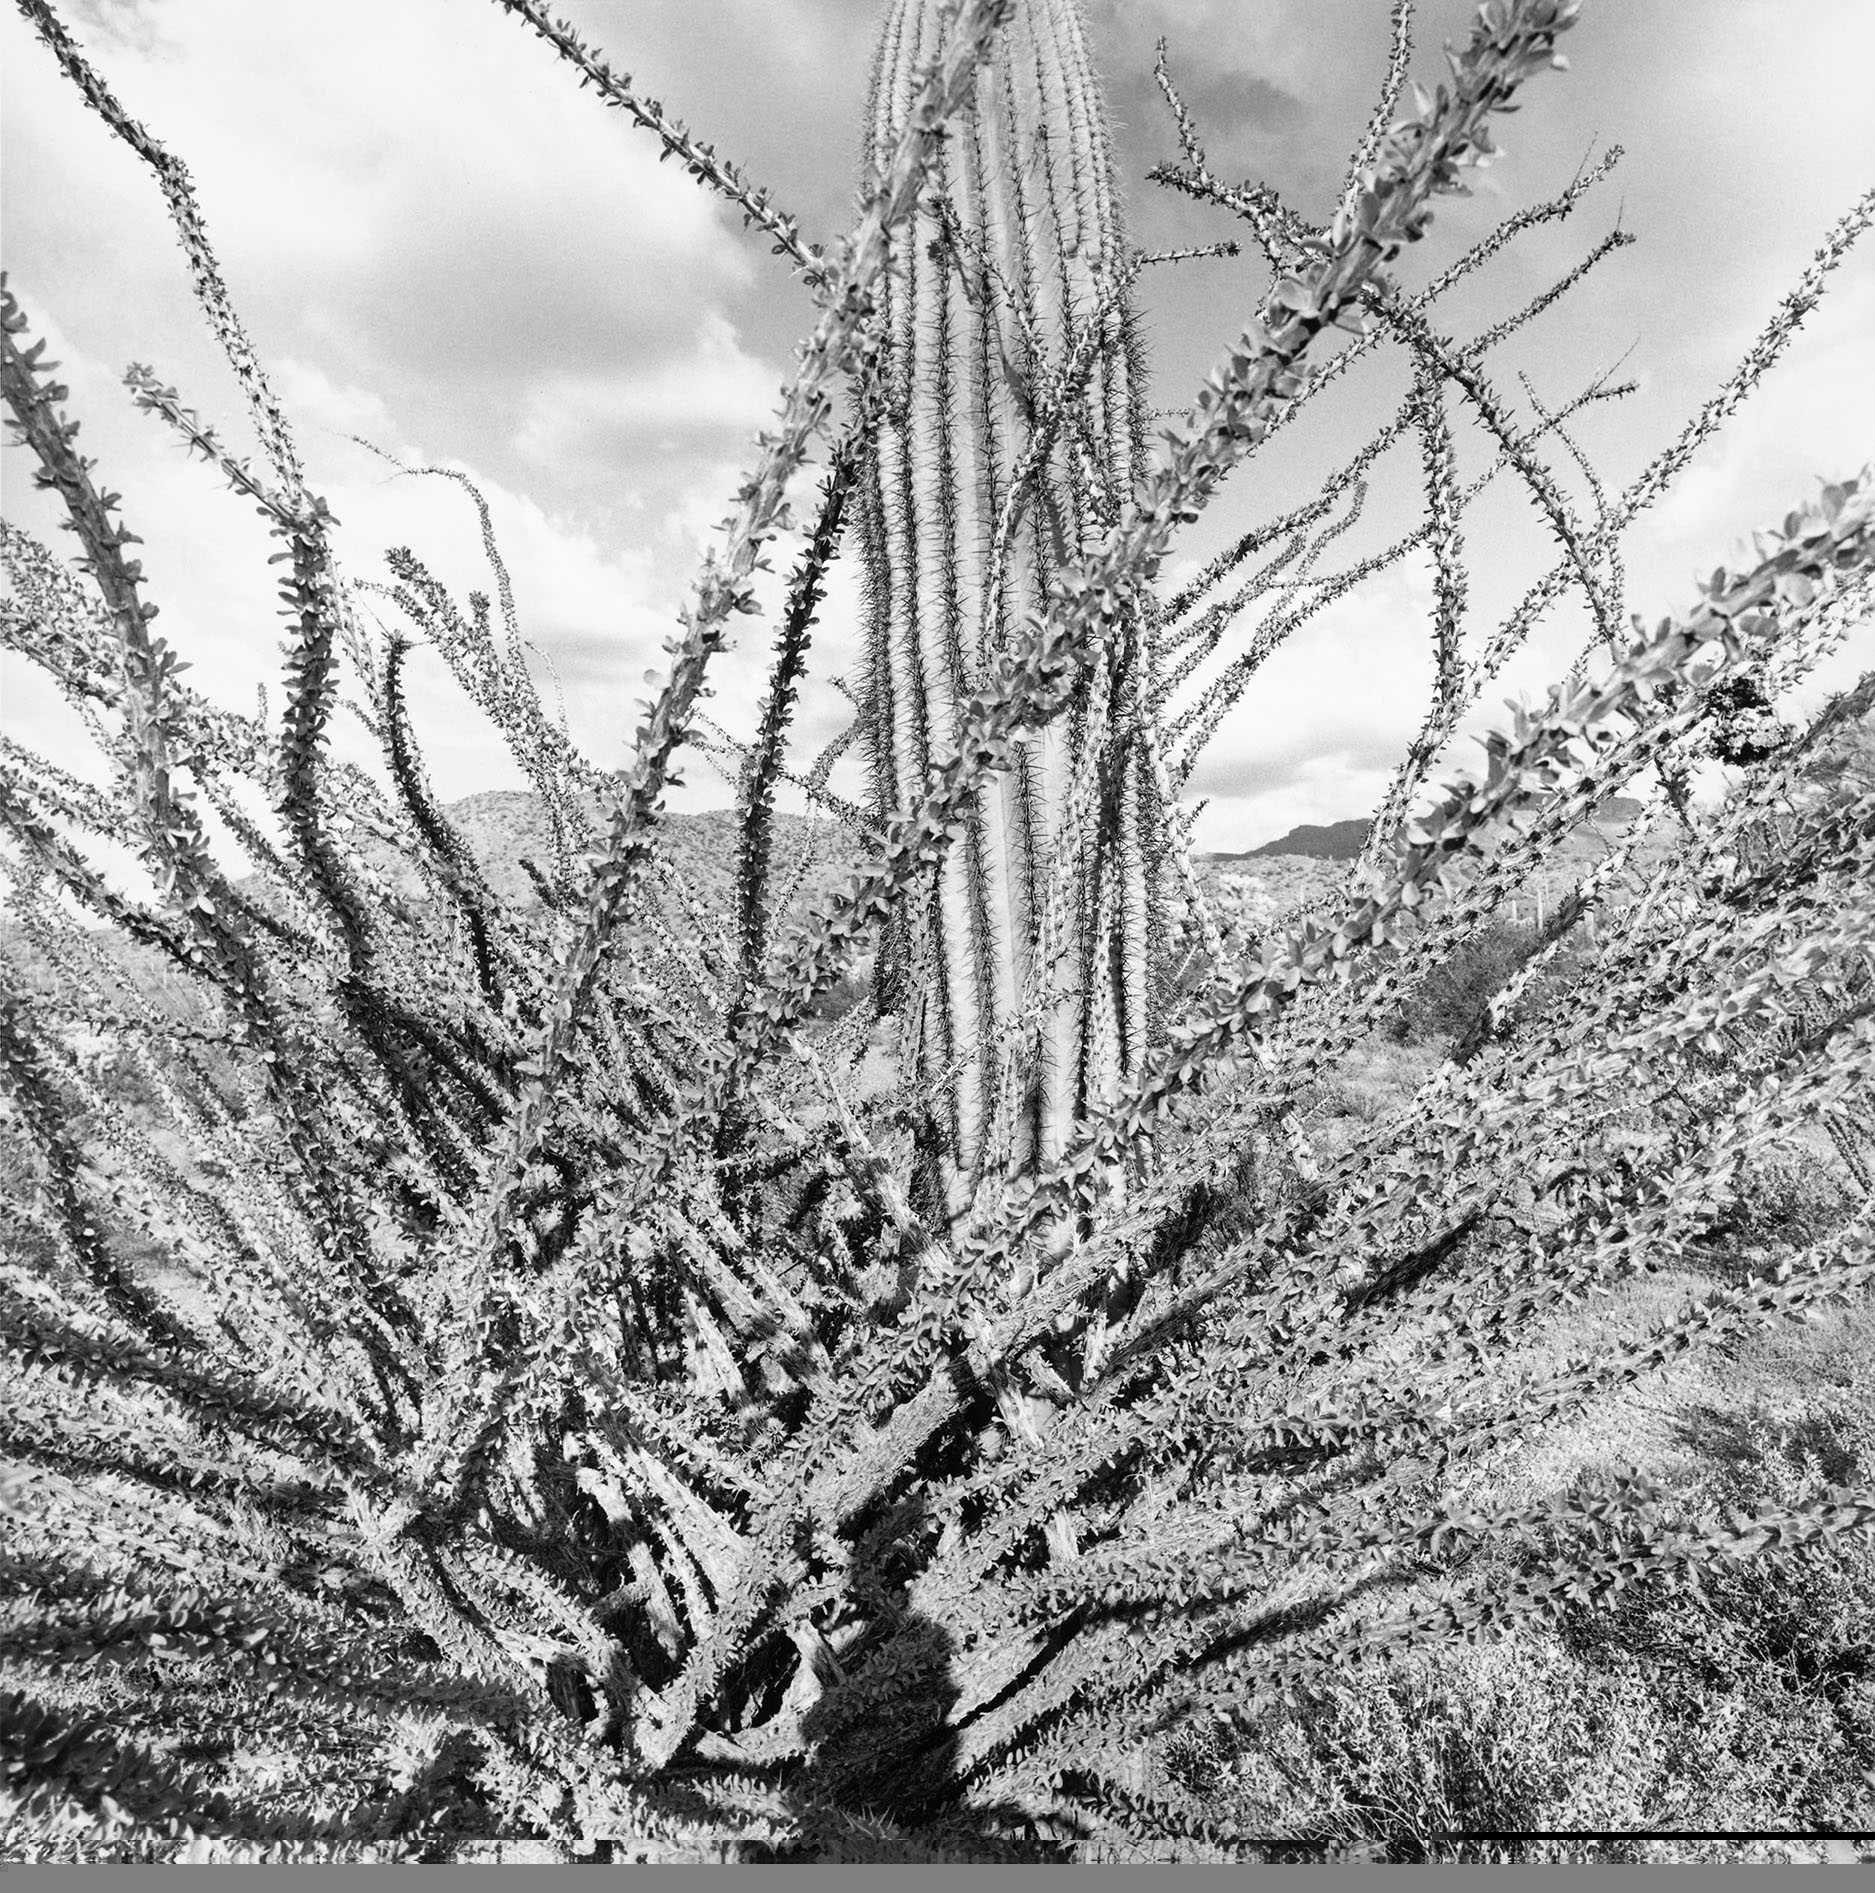 Sonoran Desert, Arizona, 1995. Gelatin silver print. © Lee Friedlander, Courtesy Fraenkel Gallery, San Francisco